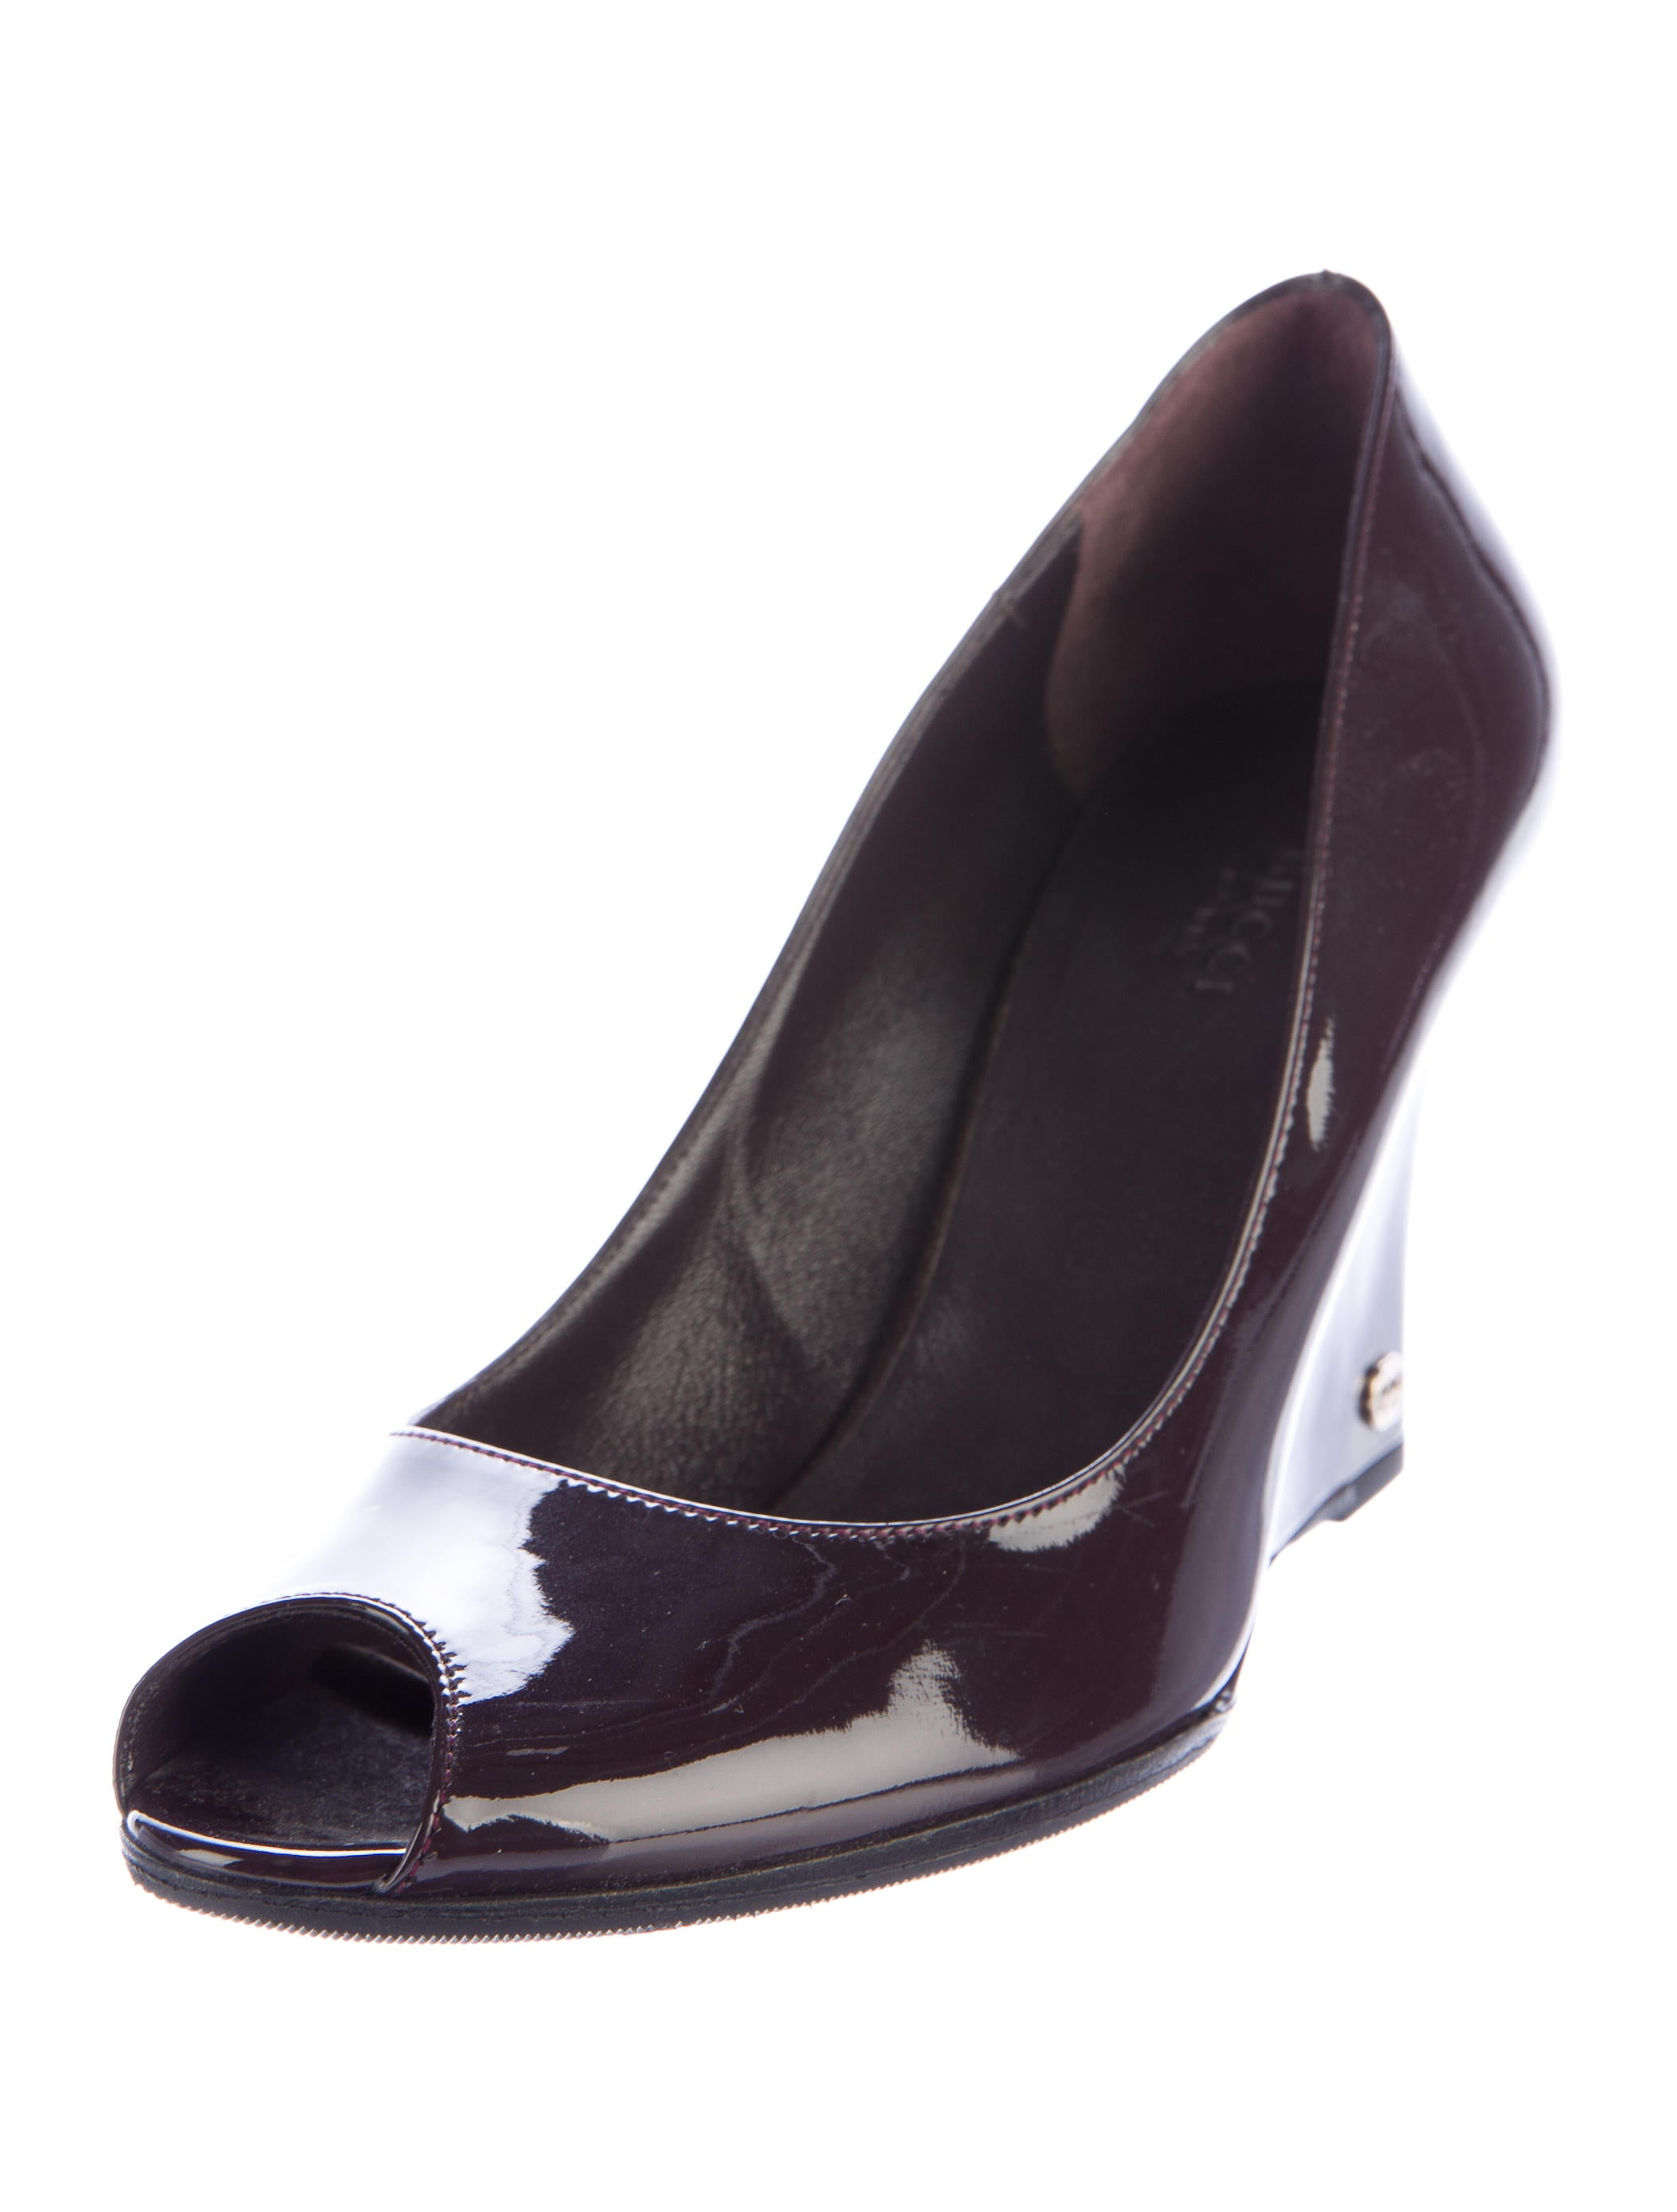 gucci patent leather gg wedges shoes guc145226 the